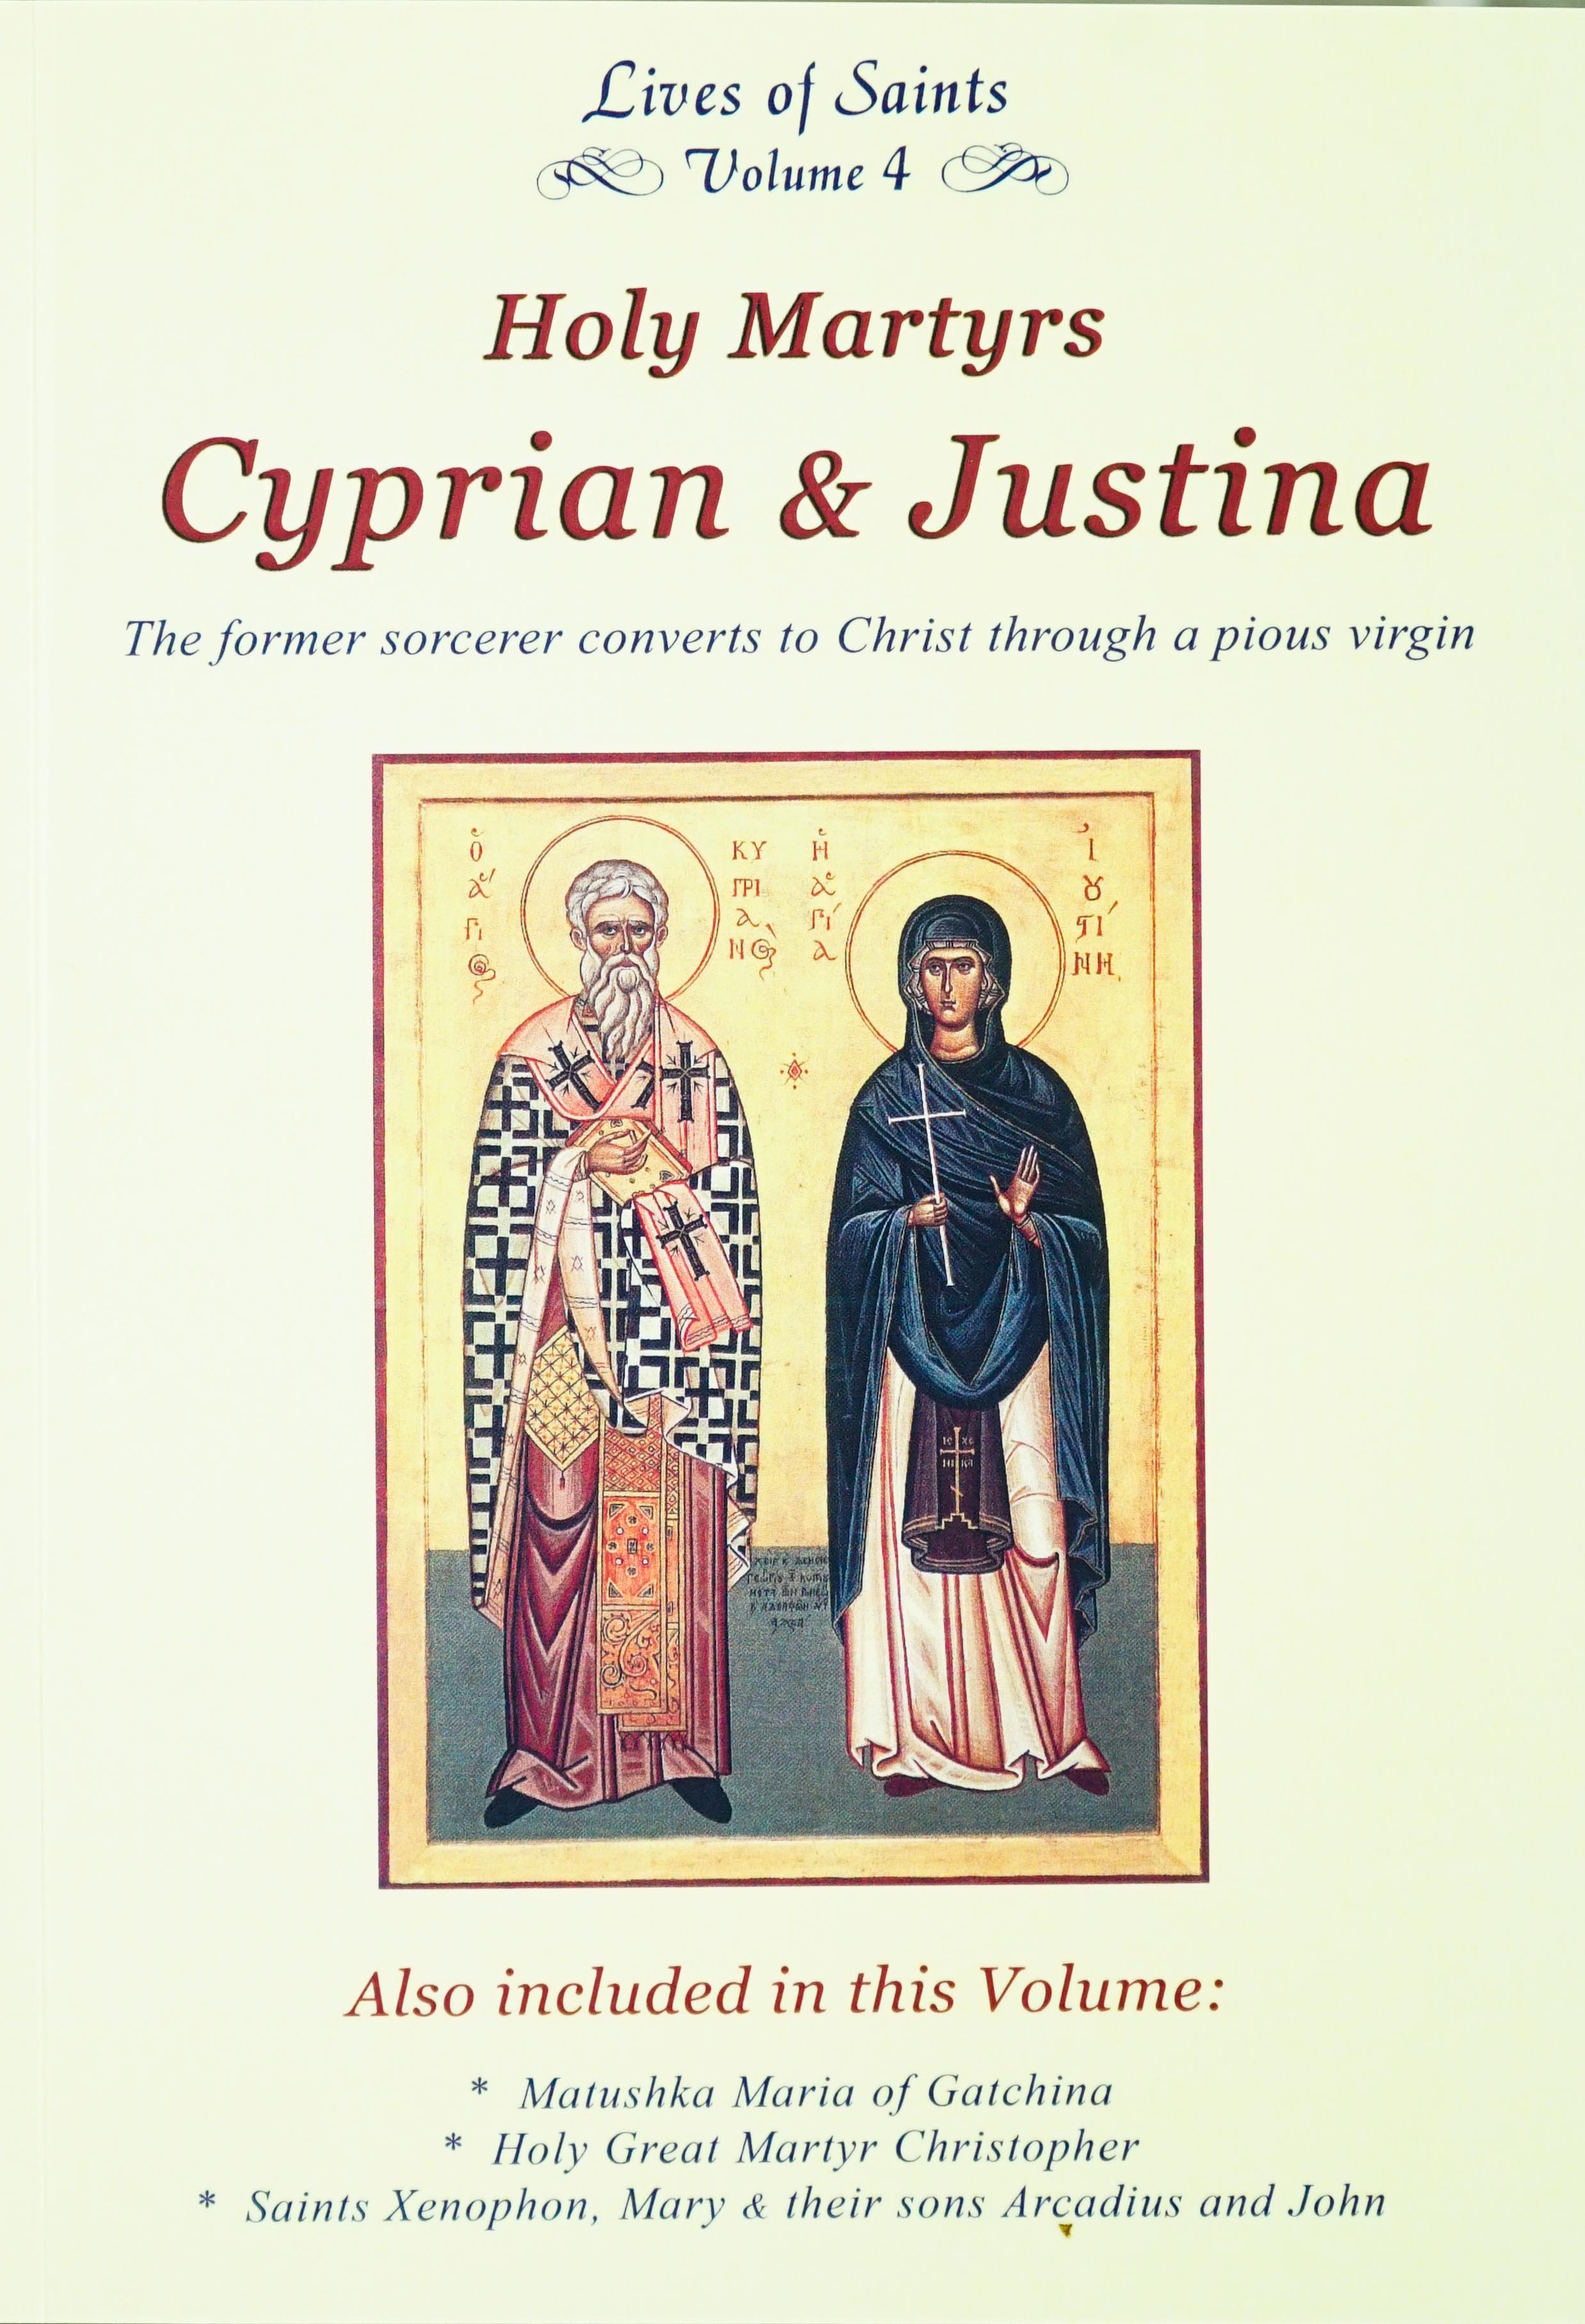 Lives of Saints Vol. 04: Holy Martyrs Cyprian & Justina